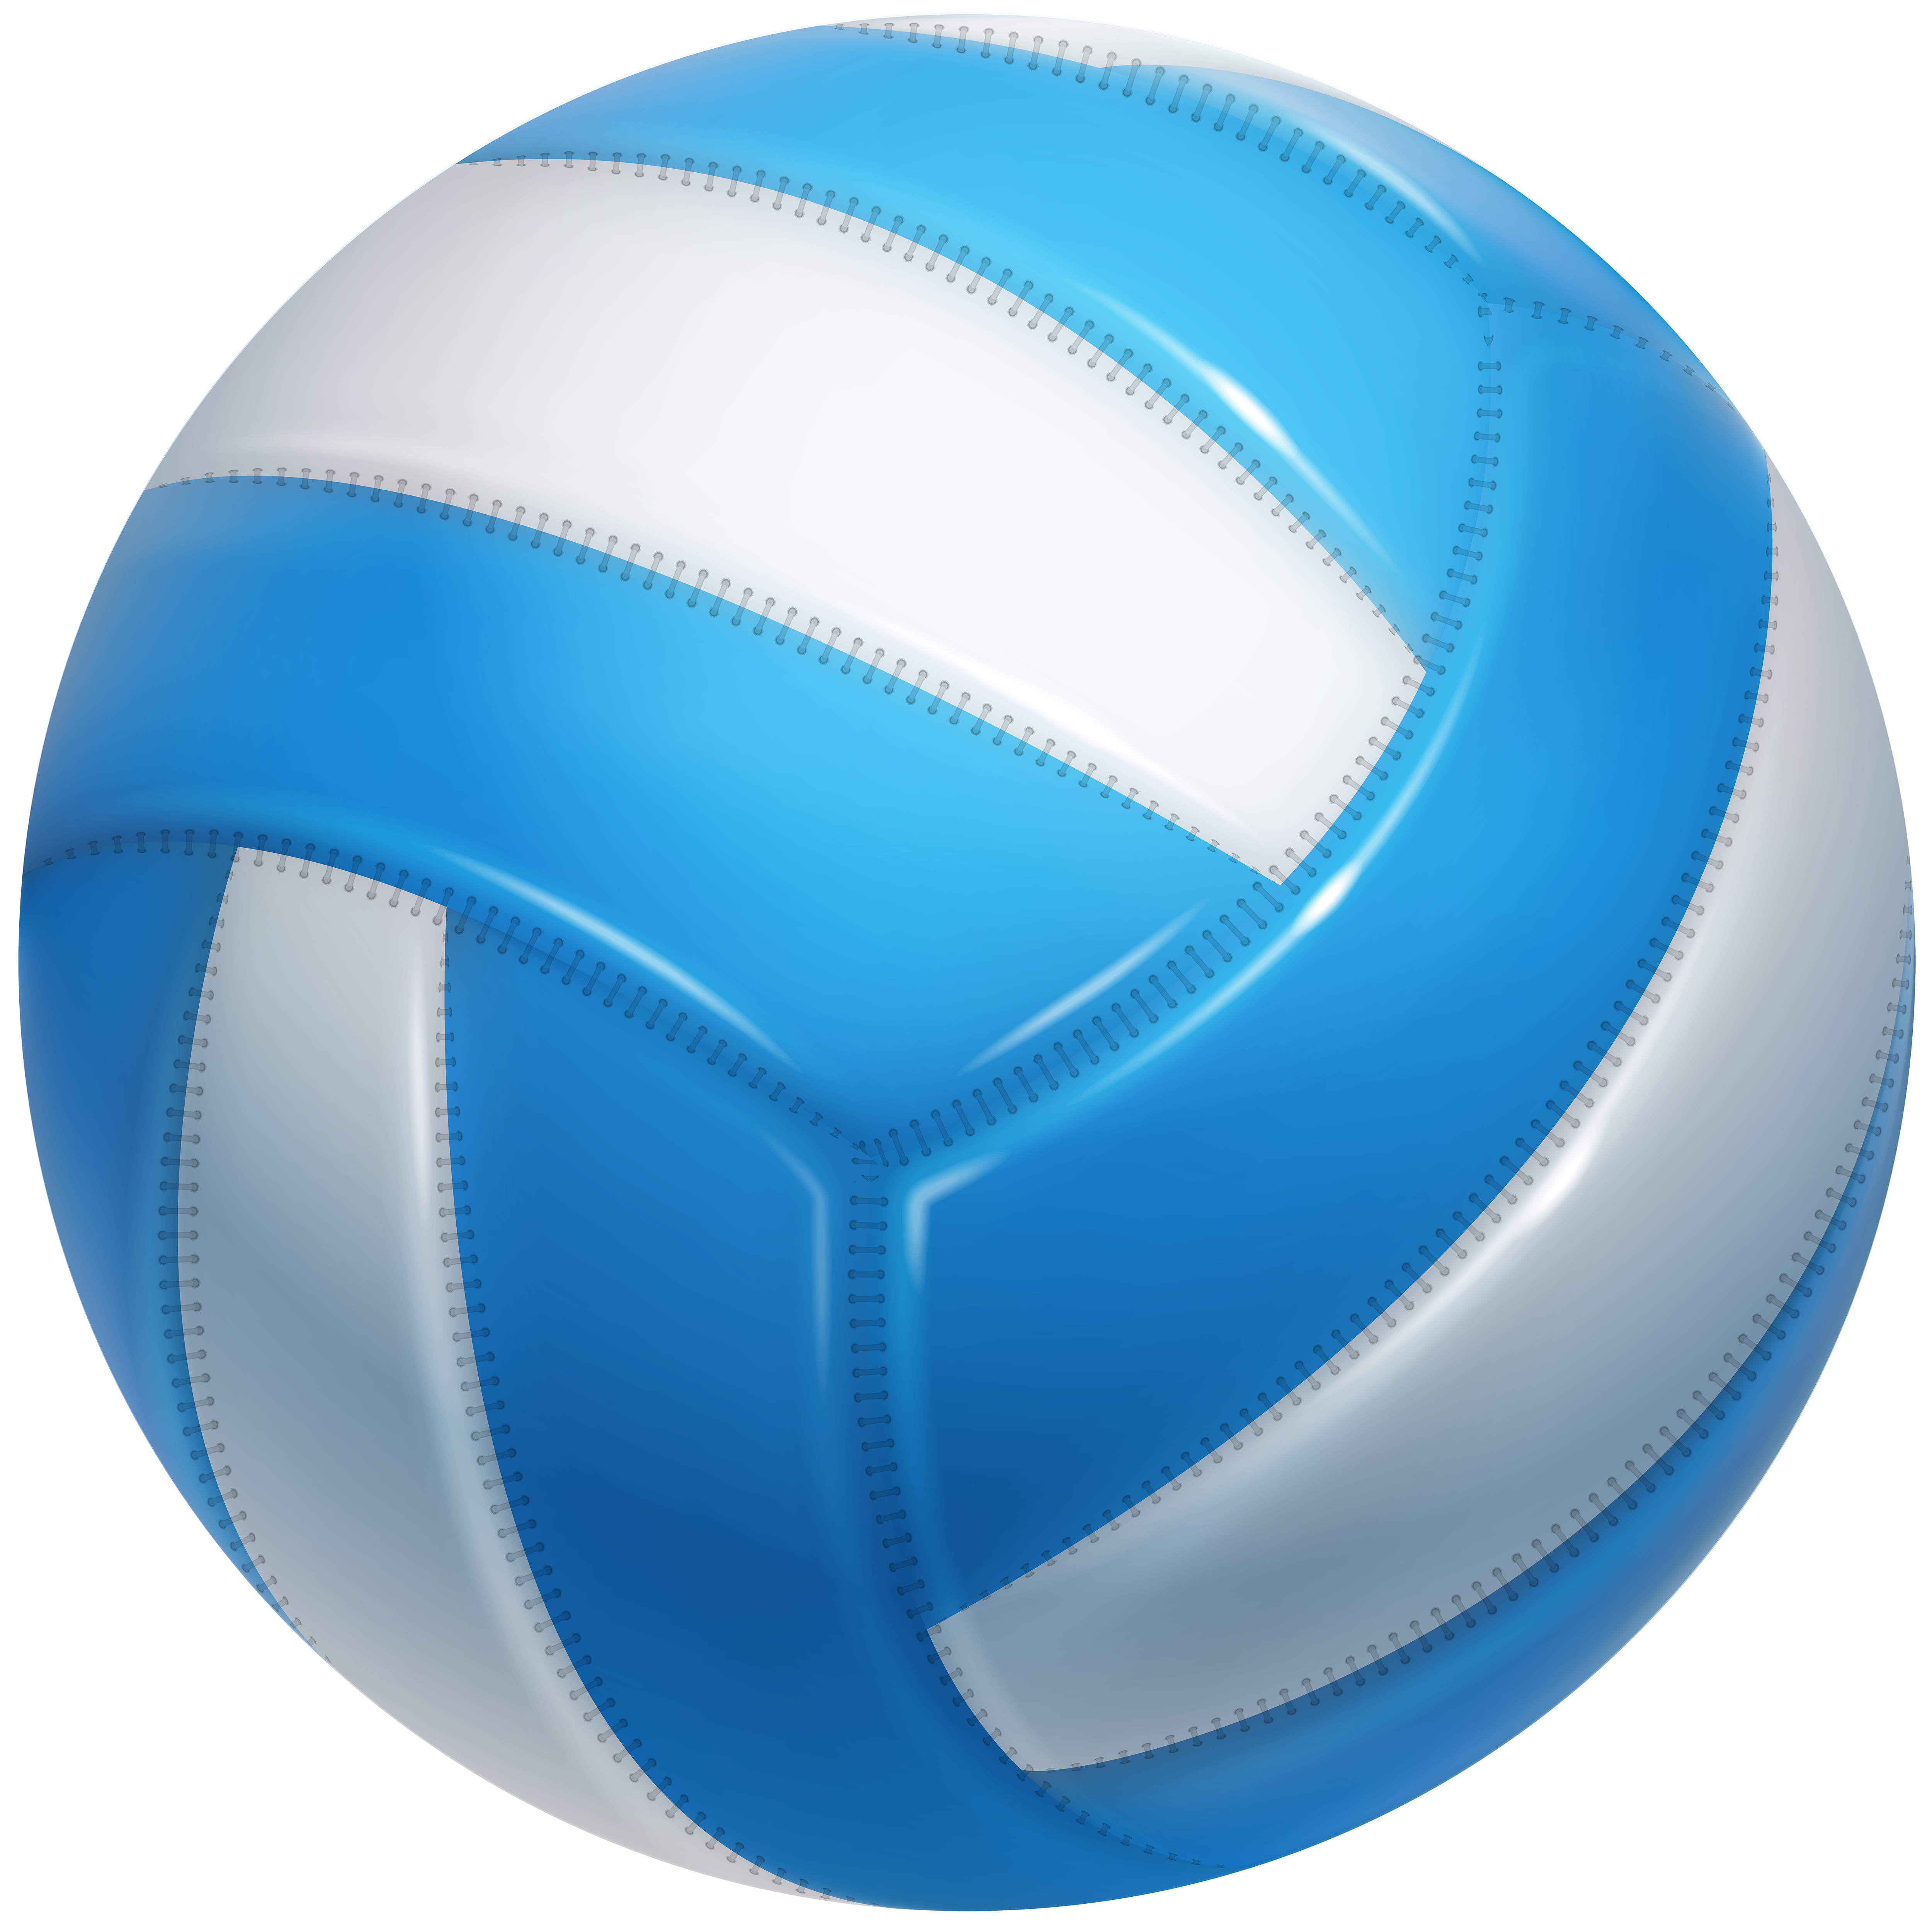 Volleyball clipart teal. Ball transparent png clip